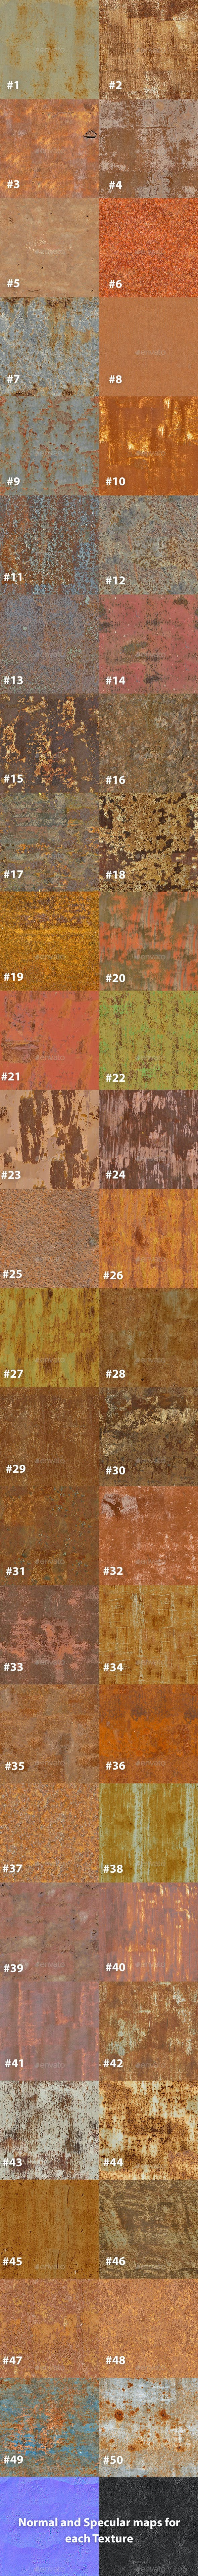 Pack of 50 Seamless Rusty Metal Textures - 3DOcean Item for Sale